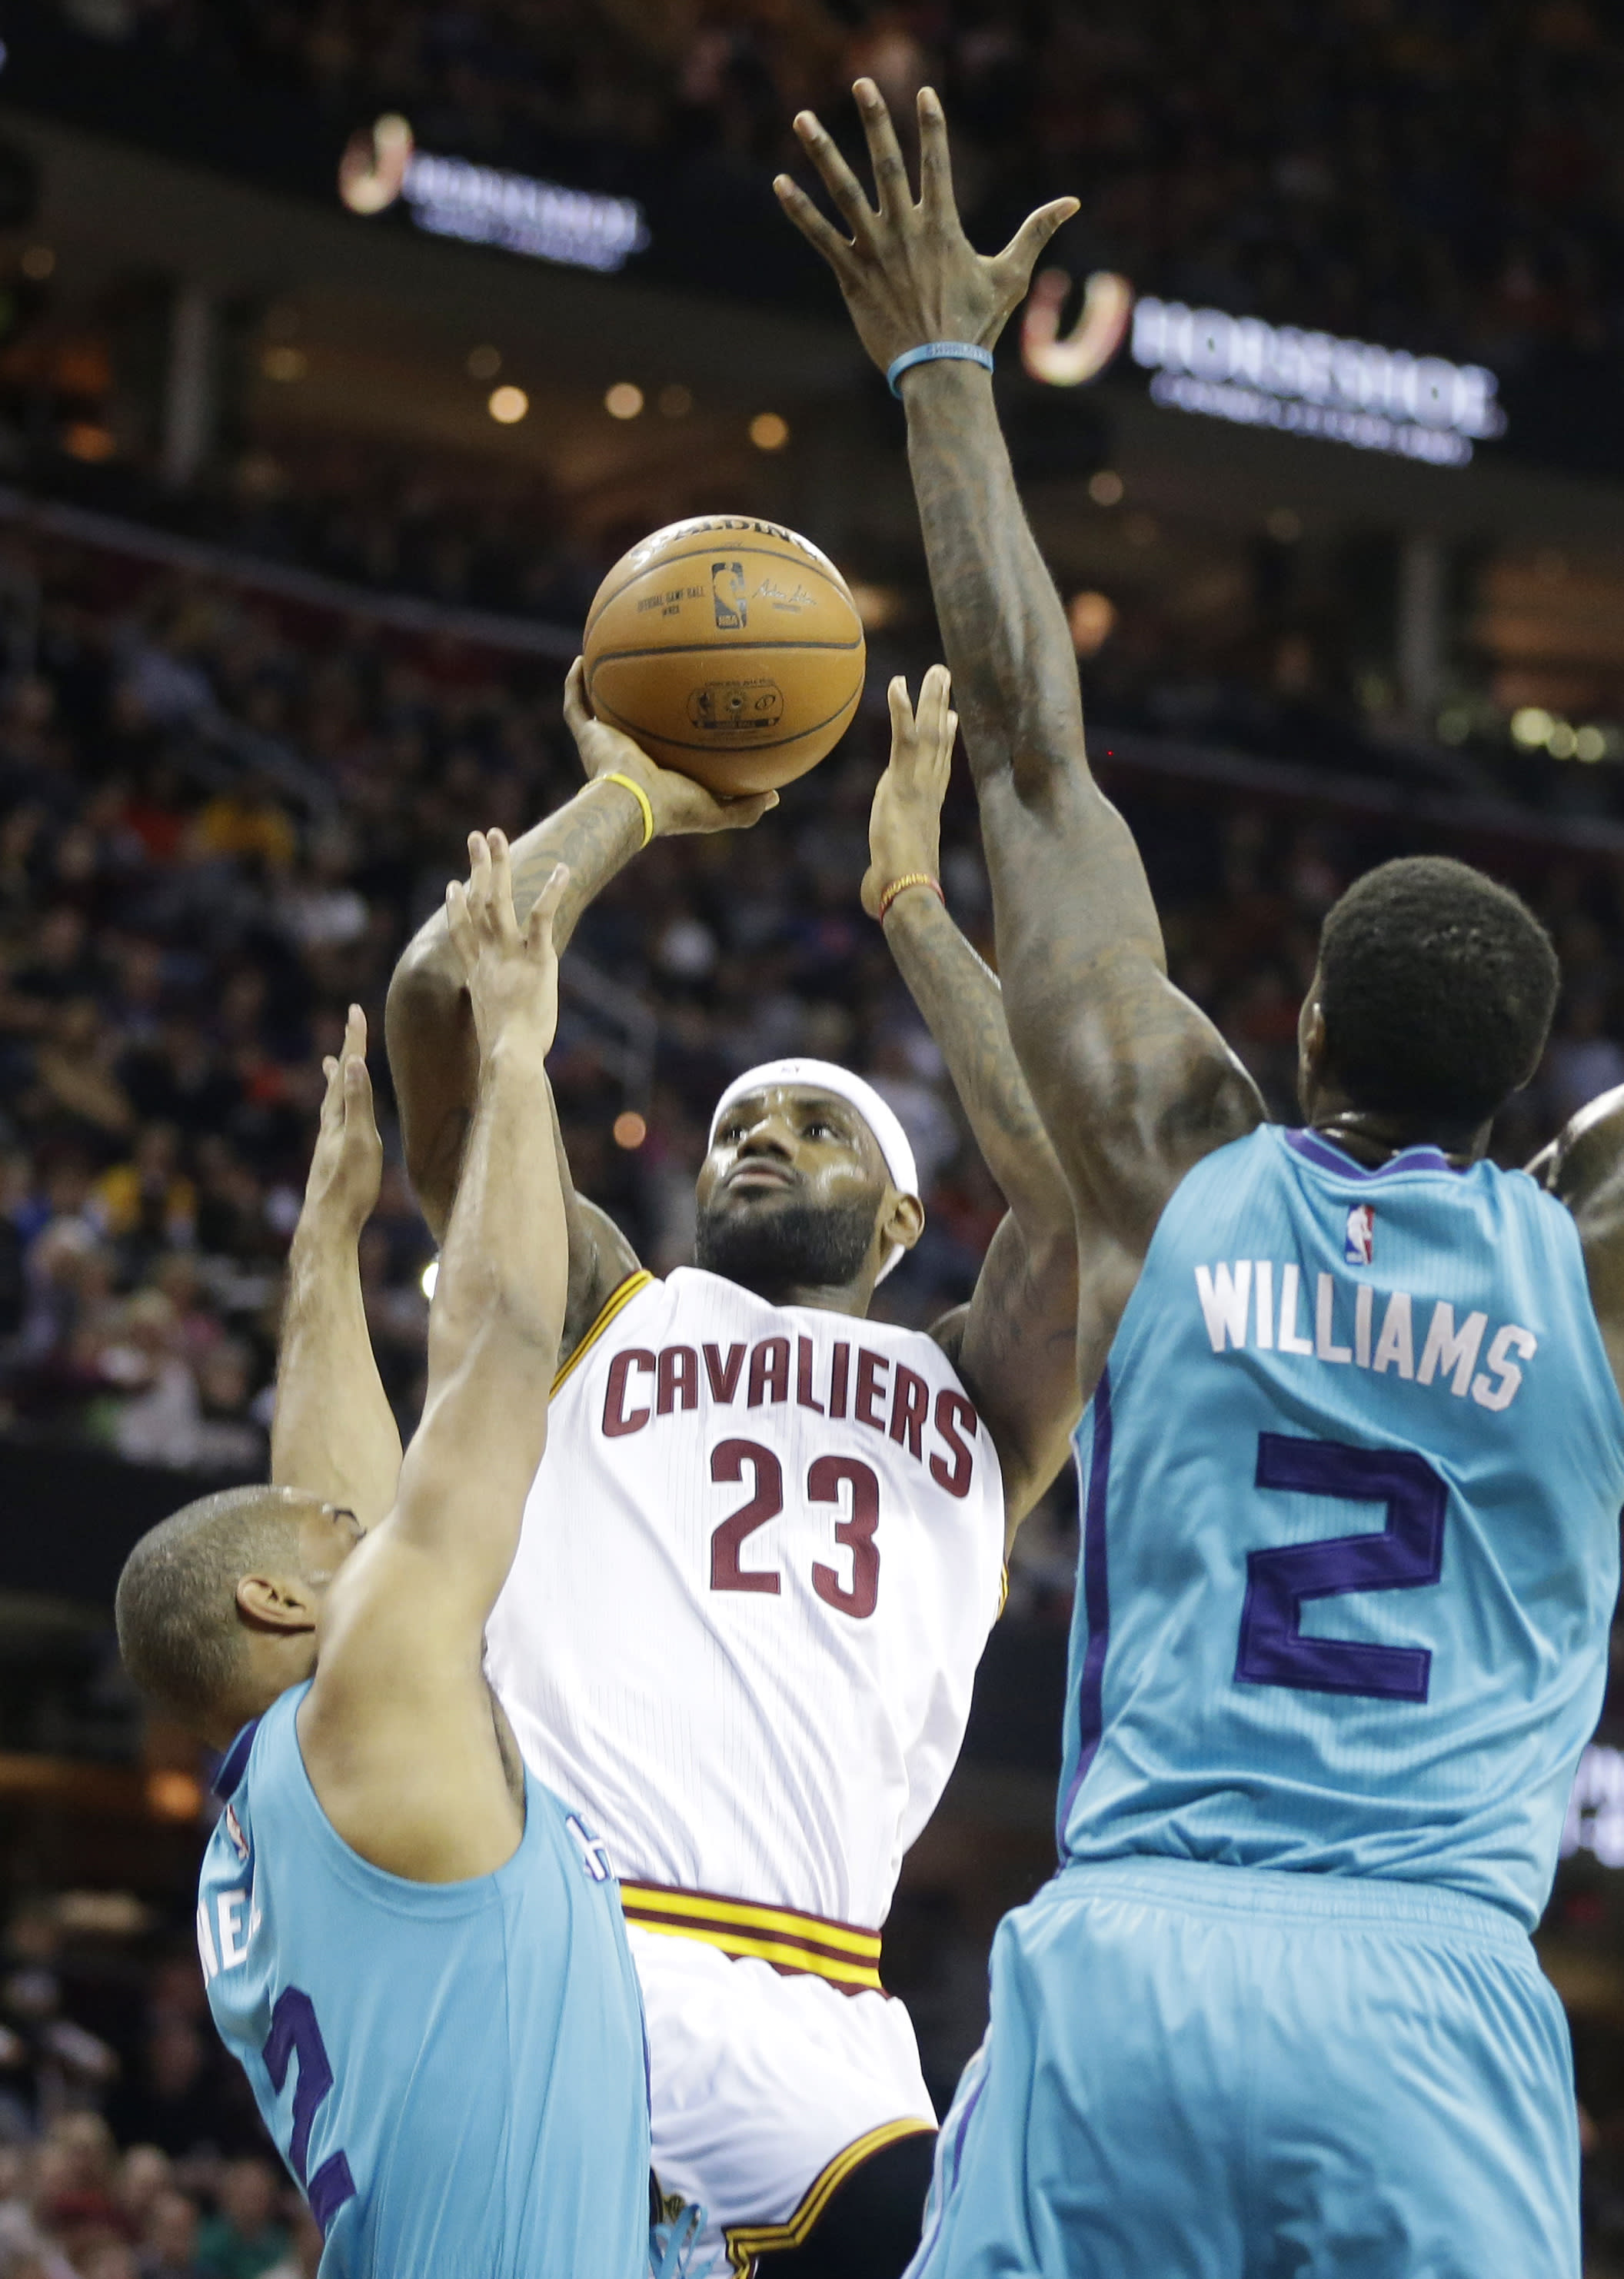 James scores 25 as Cavaliers rout Hornets 129-90